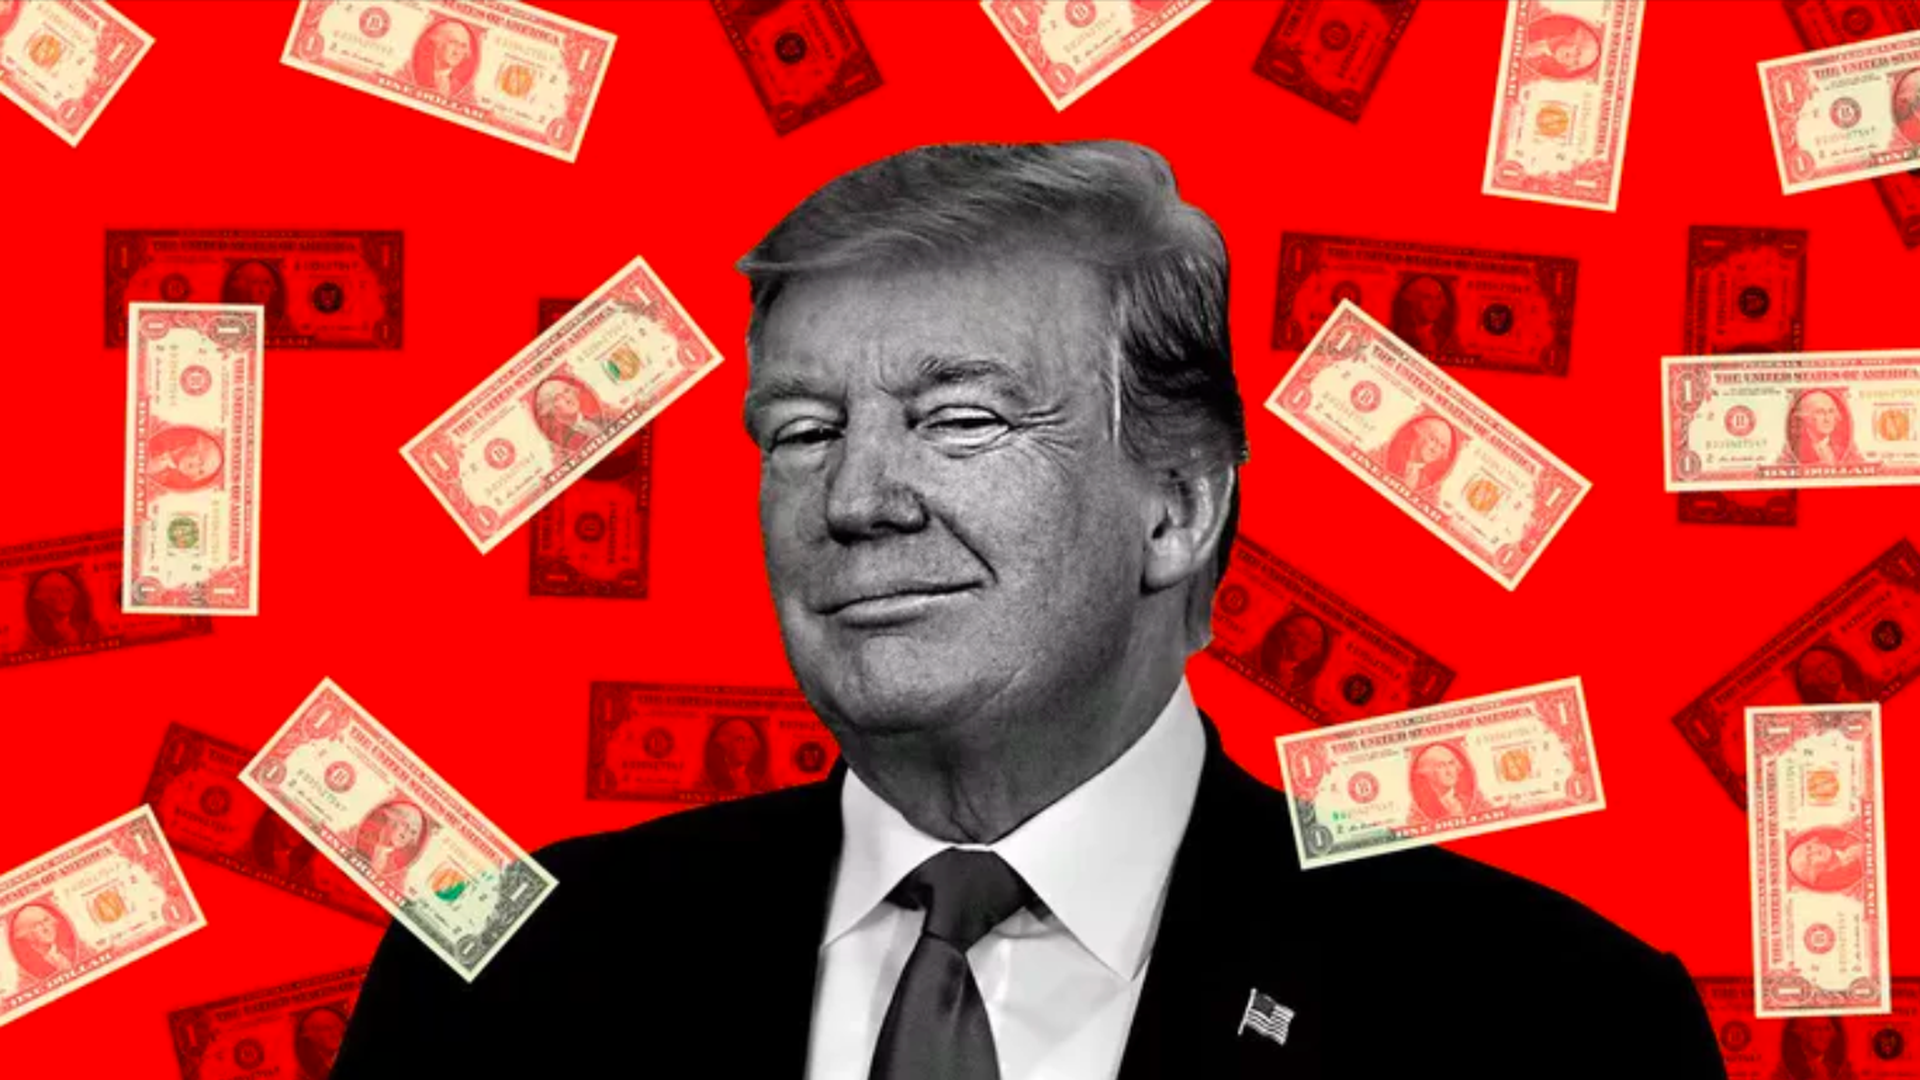 In this illustration, US dollars fall around Trump's head. He's smirking.